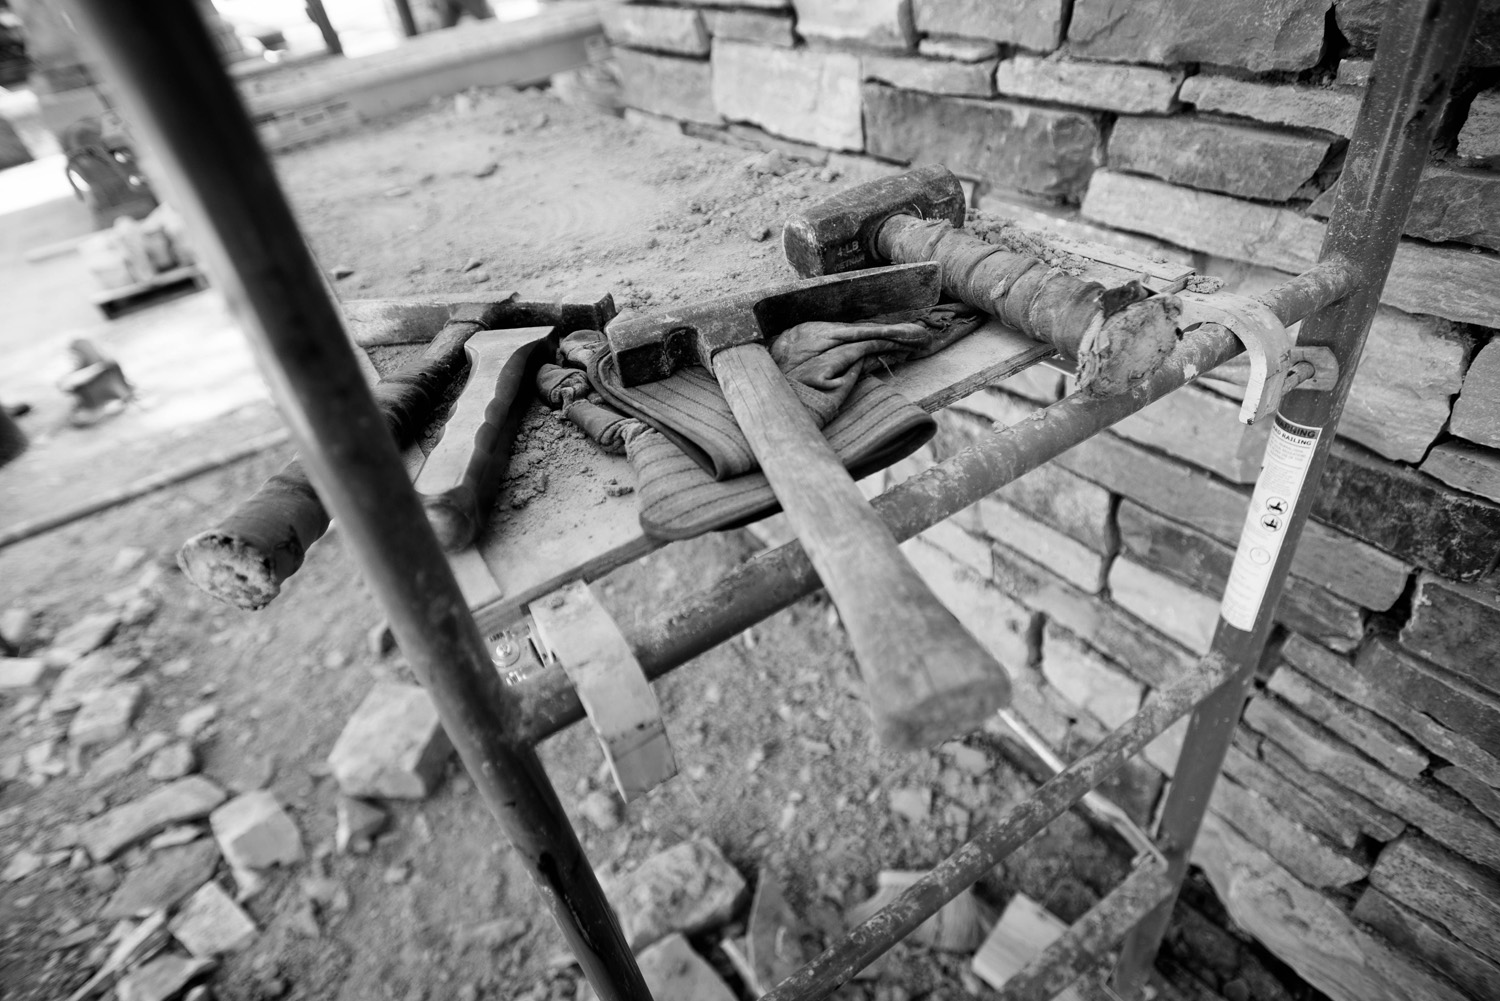 Stone mason tools on display at The Gardens of Castle Rock. Photography by Southern Minnesota trades and editorial photographer Anthologie.